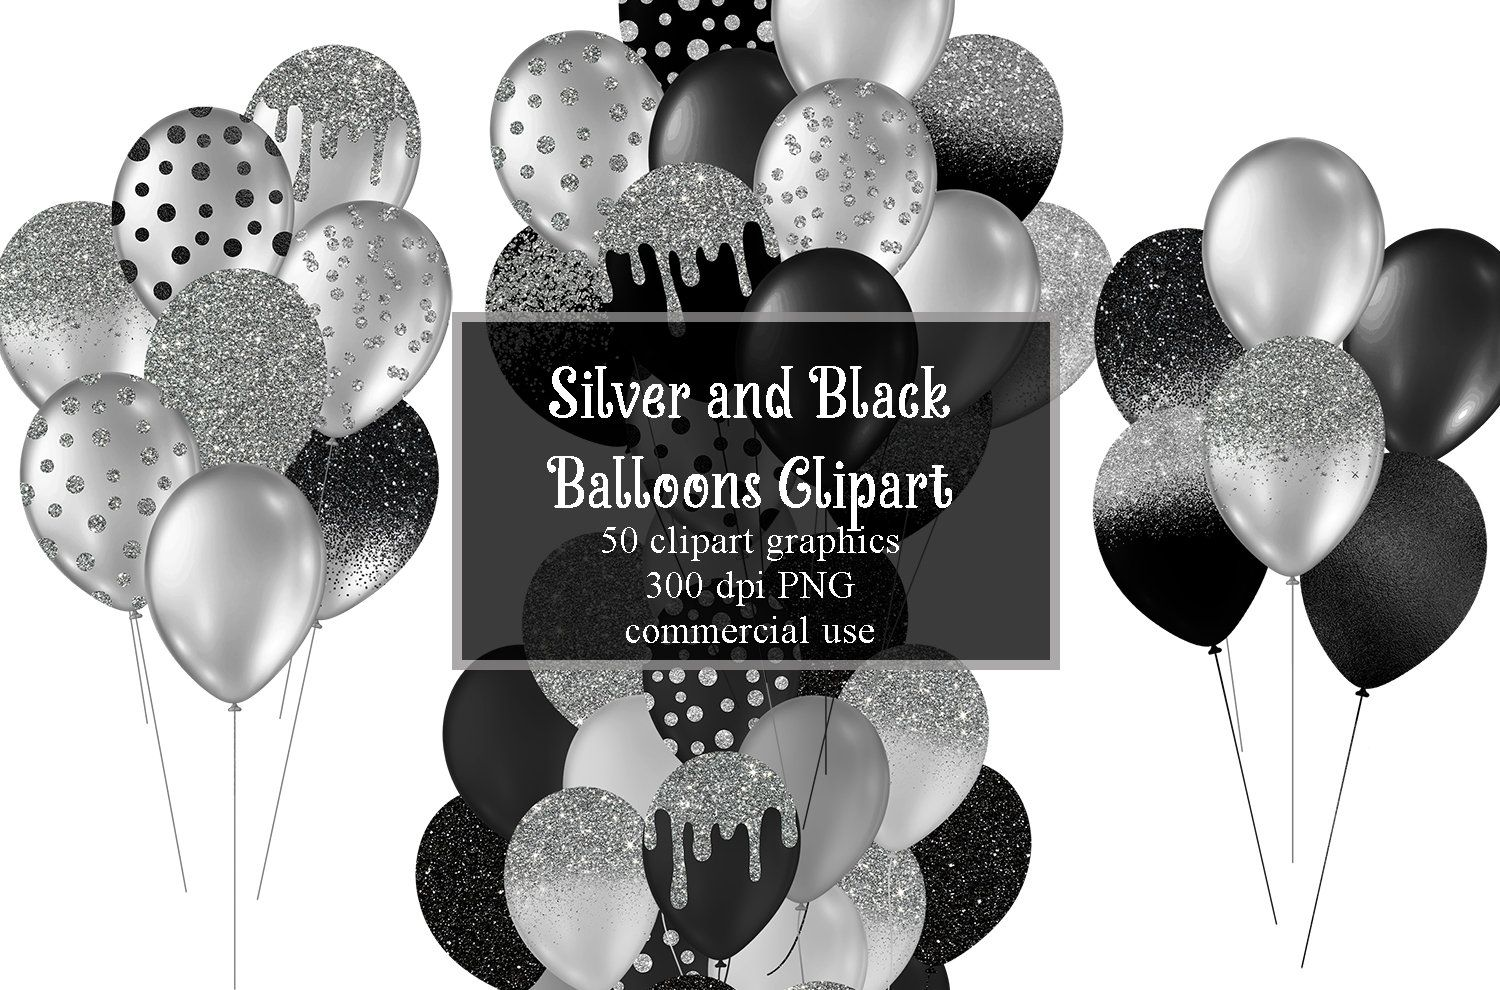 Black And Silver Balloons Clipart Glitter Balloon Png Digital Etsy In 2021 Balloon Clipart Silver Balloon Glitter Balloons